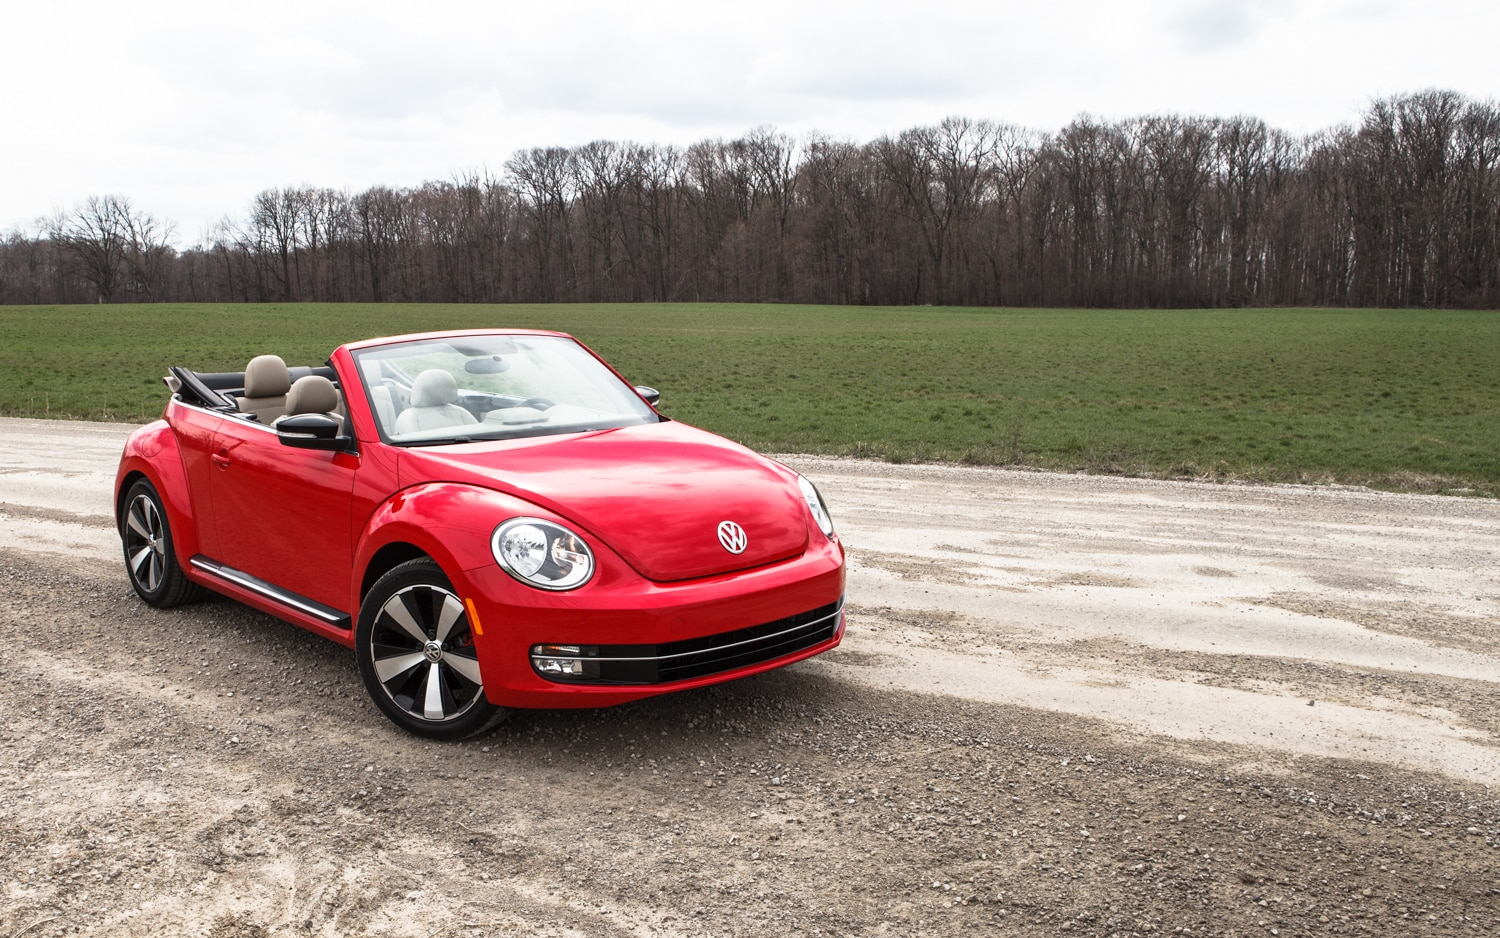 2013 Volkswagen Beetle Turbo Convertible Front Right View 101